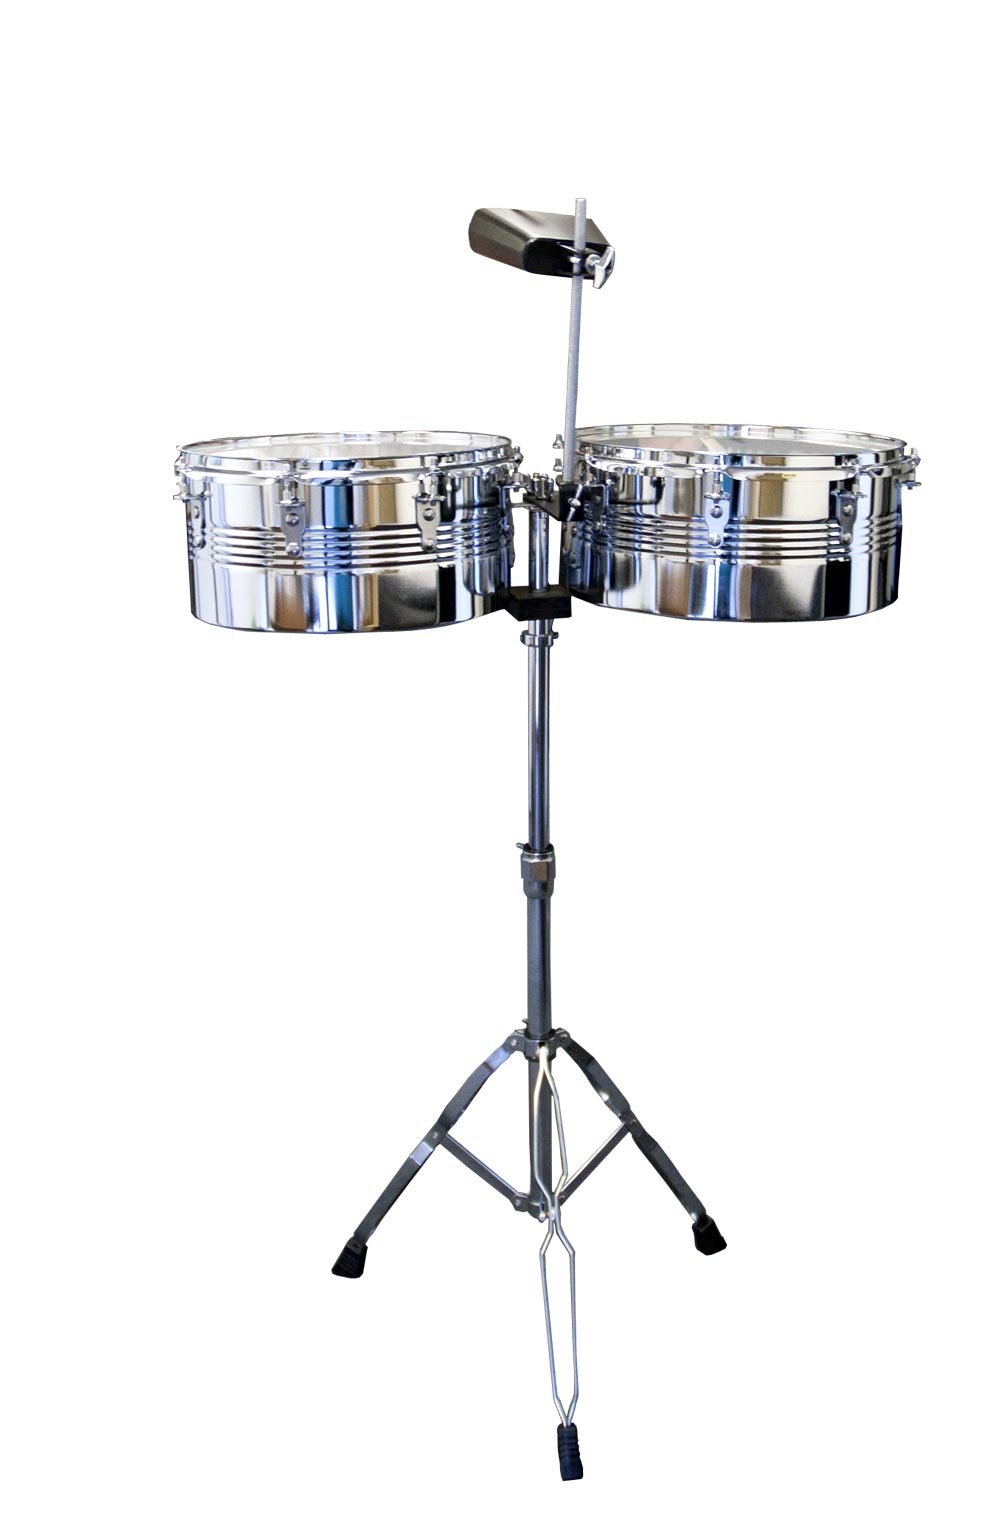 Suzuki Musical Instrument Corporation TS-2 Timbale Drum Set with Stand, Cowbell and Sticks